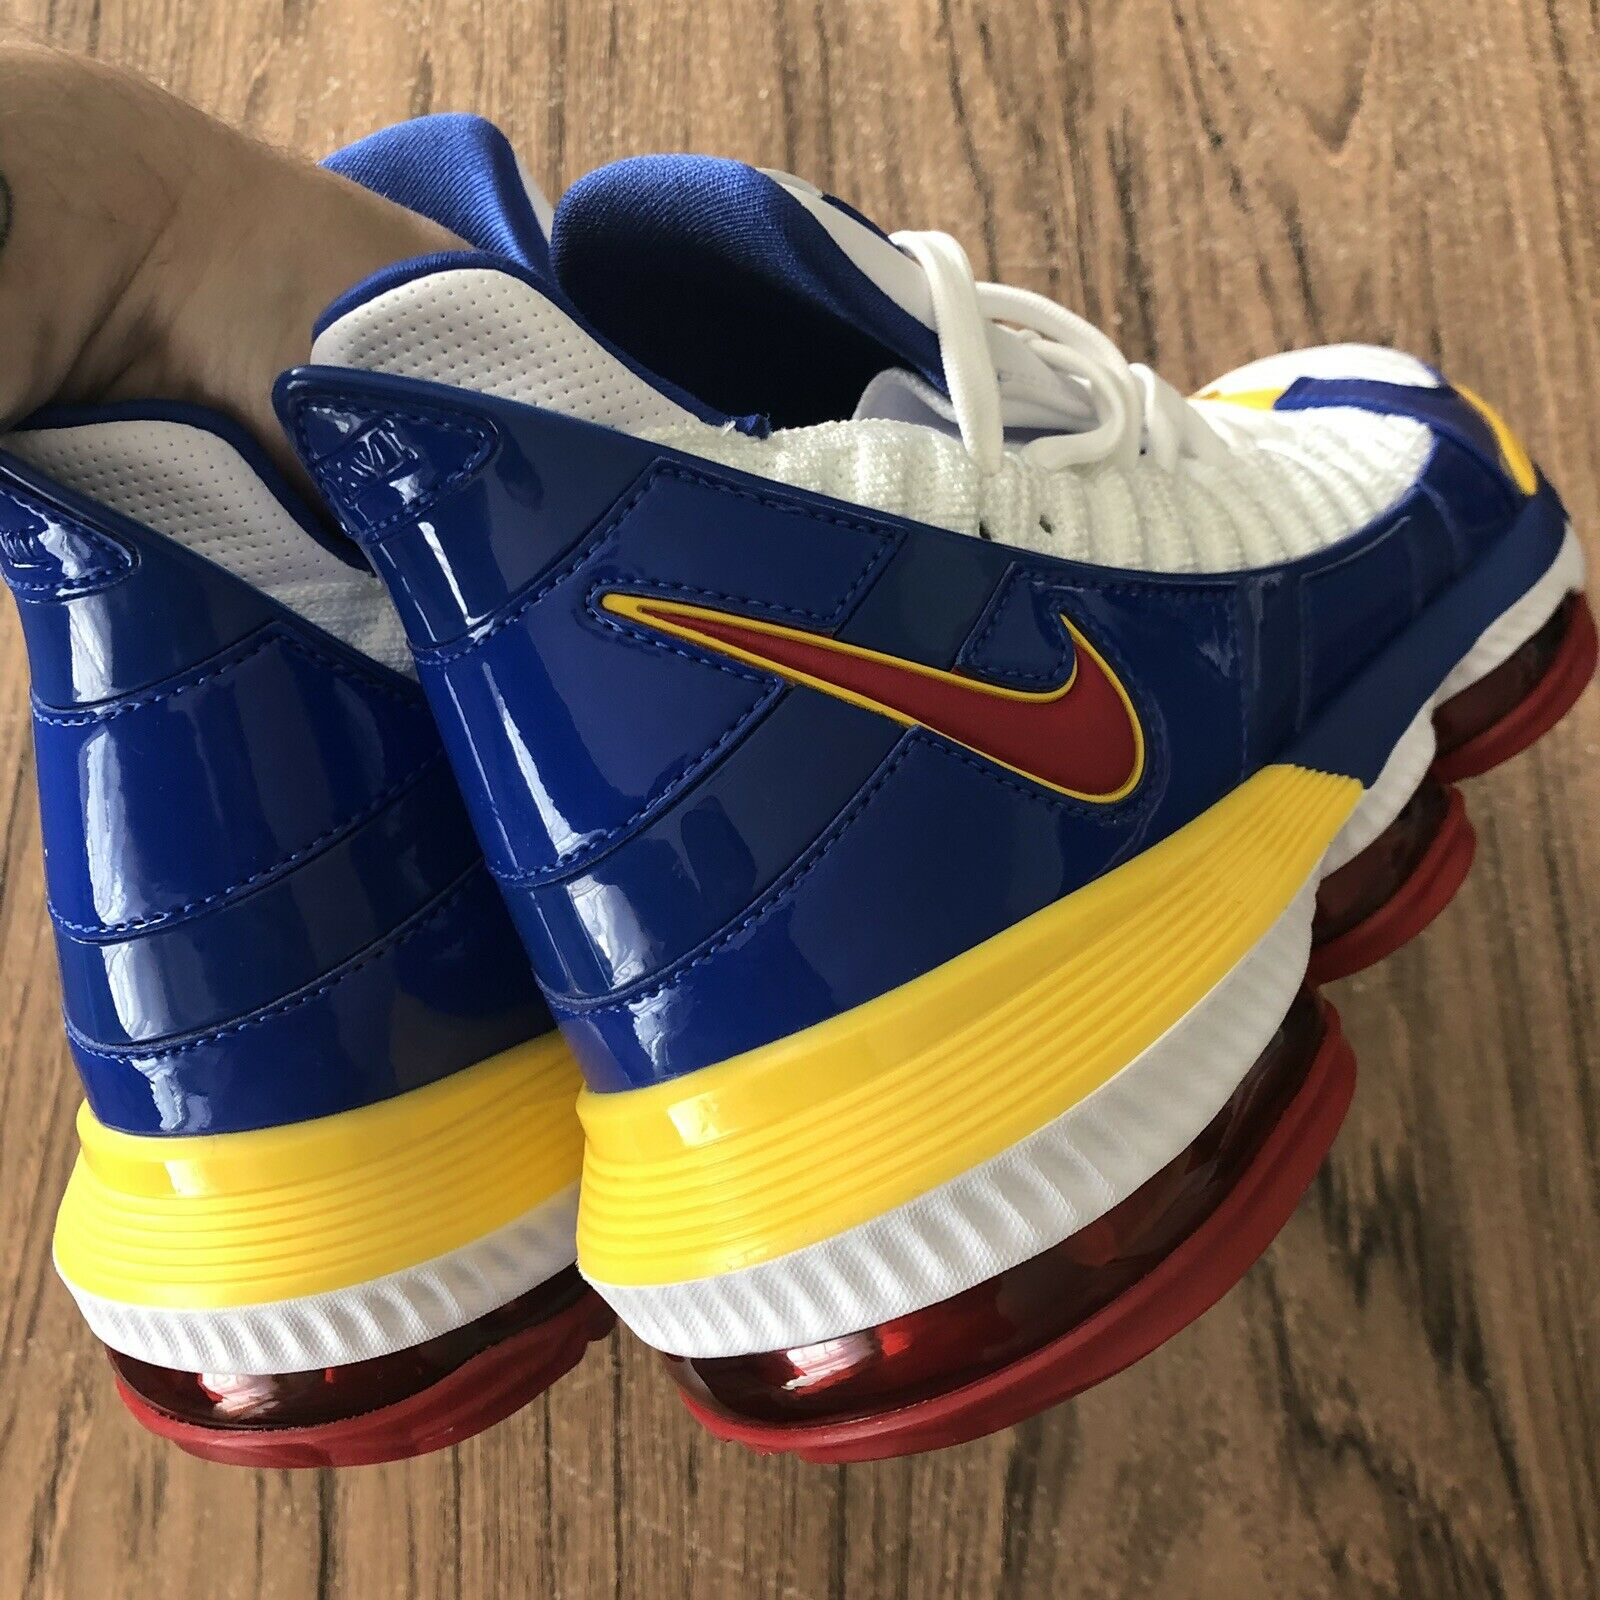 outlet store 8eaca 8927f ... A1046G A1046G A1046G Nike Lebron XVI Superbron CD2451-100 Mens  Basketball Sneakers Size 10 NEW ...